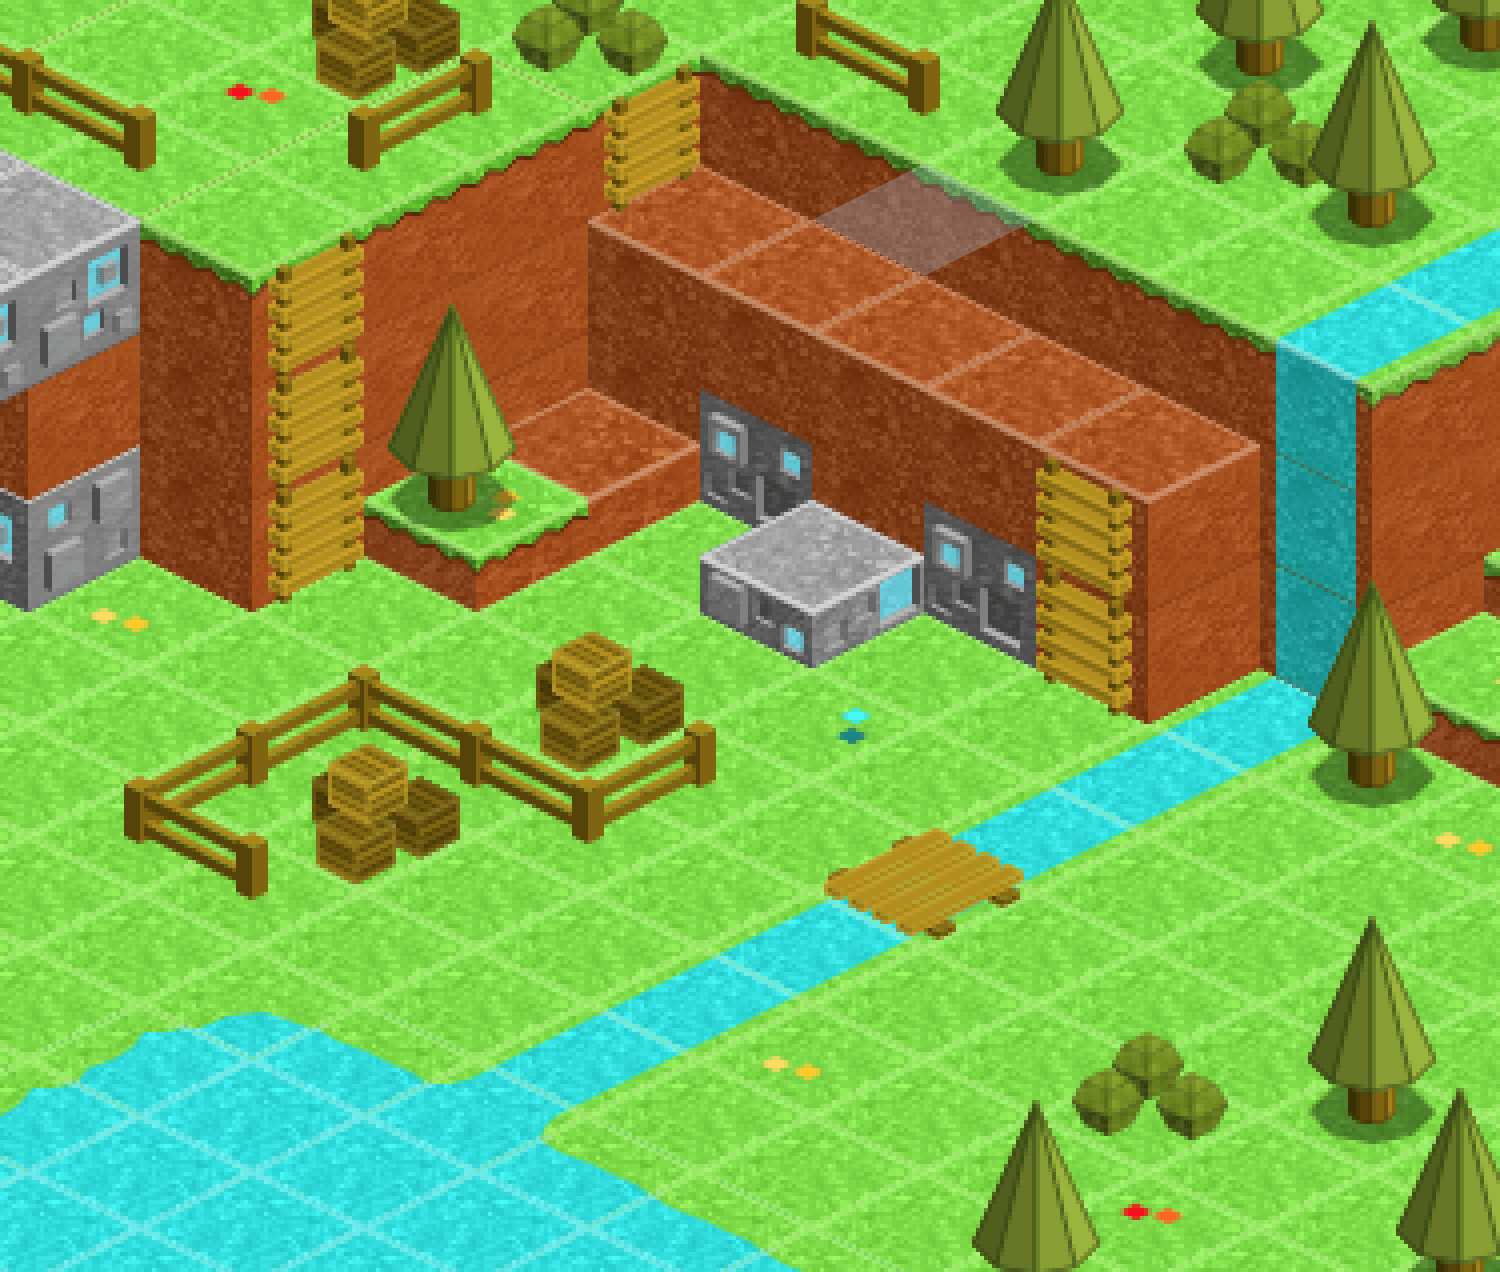 3D isometric tileset, selfmade with Inkscape SVG